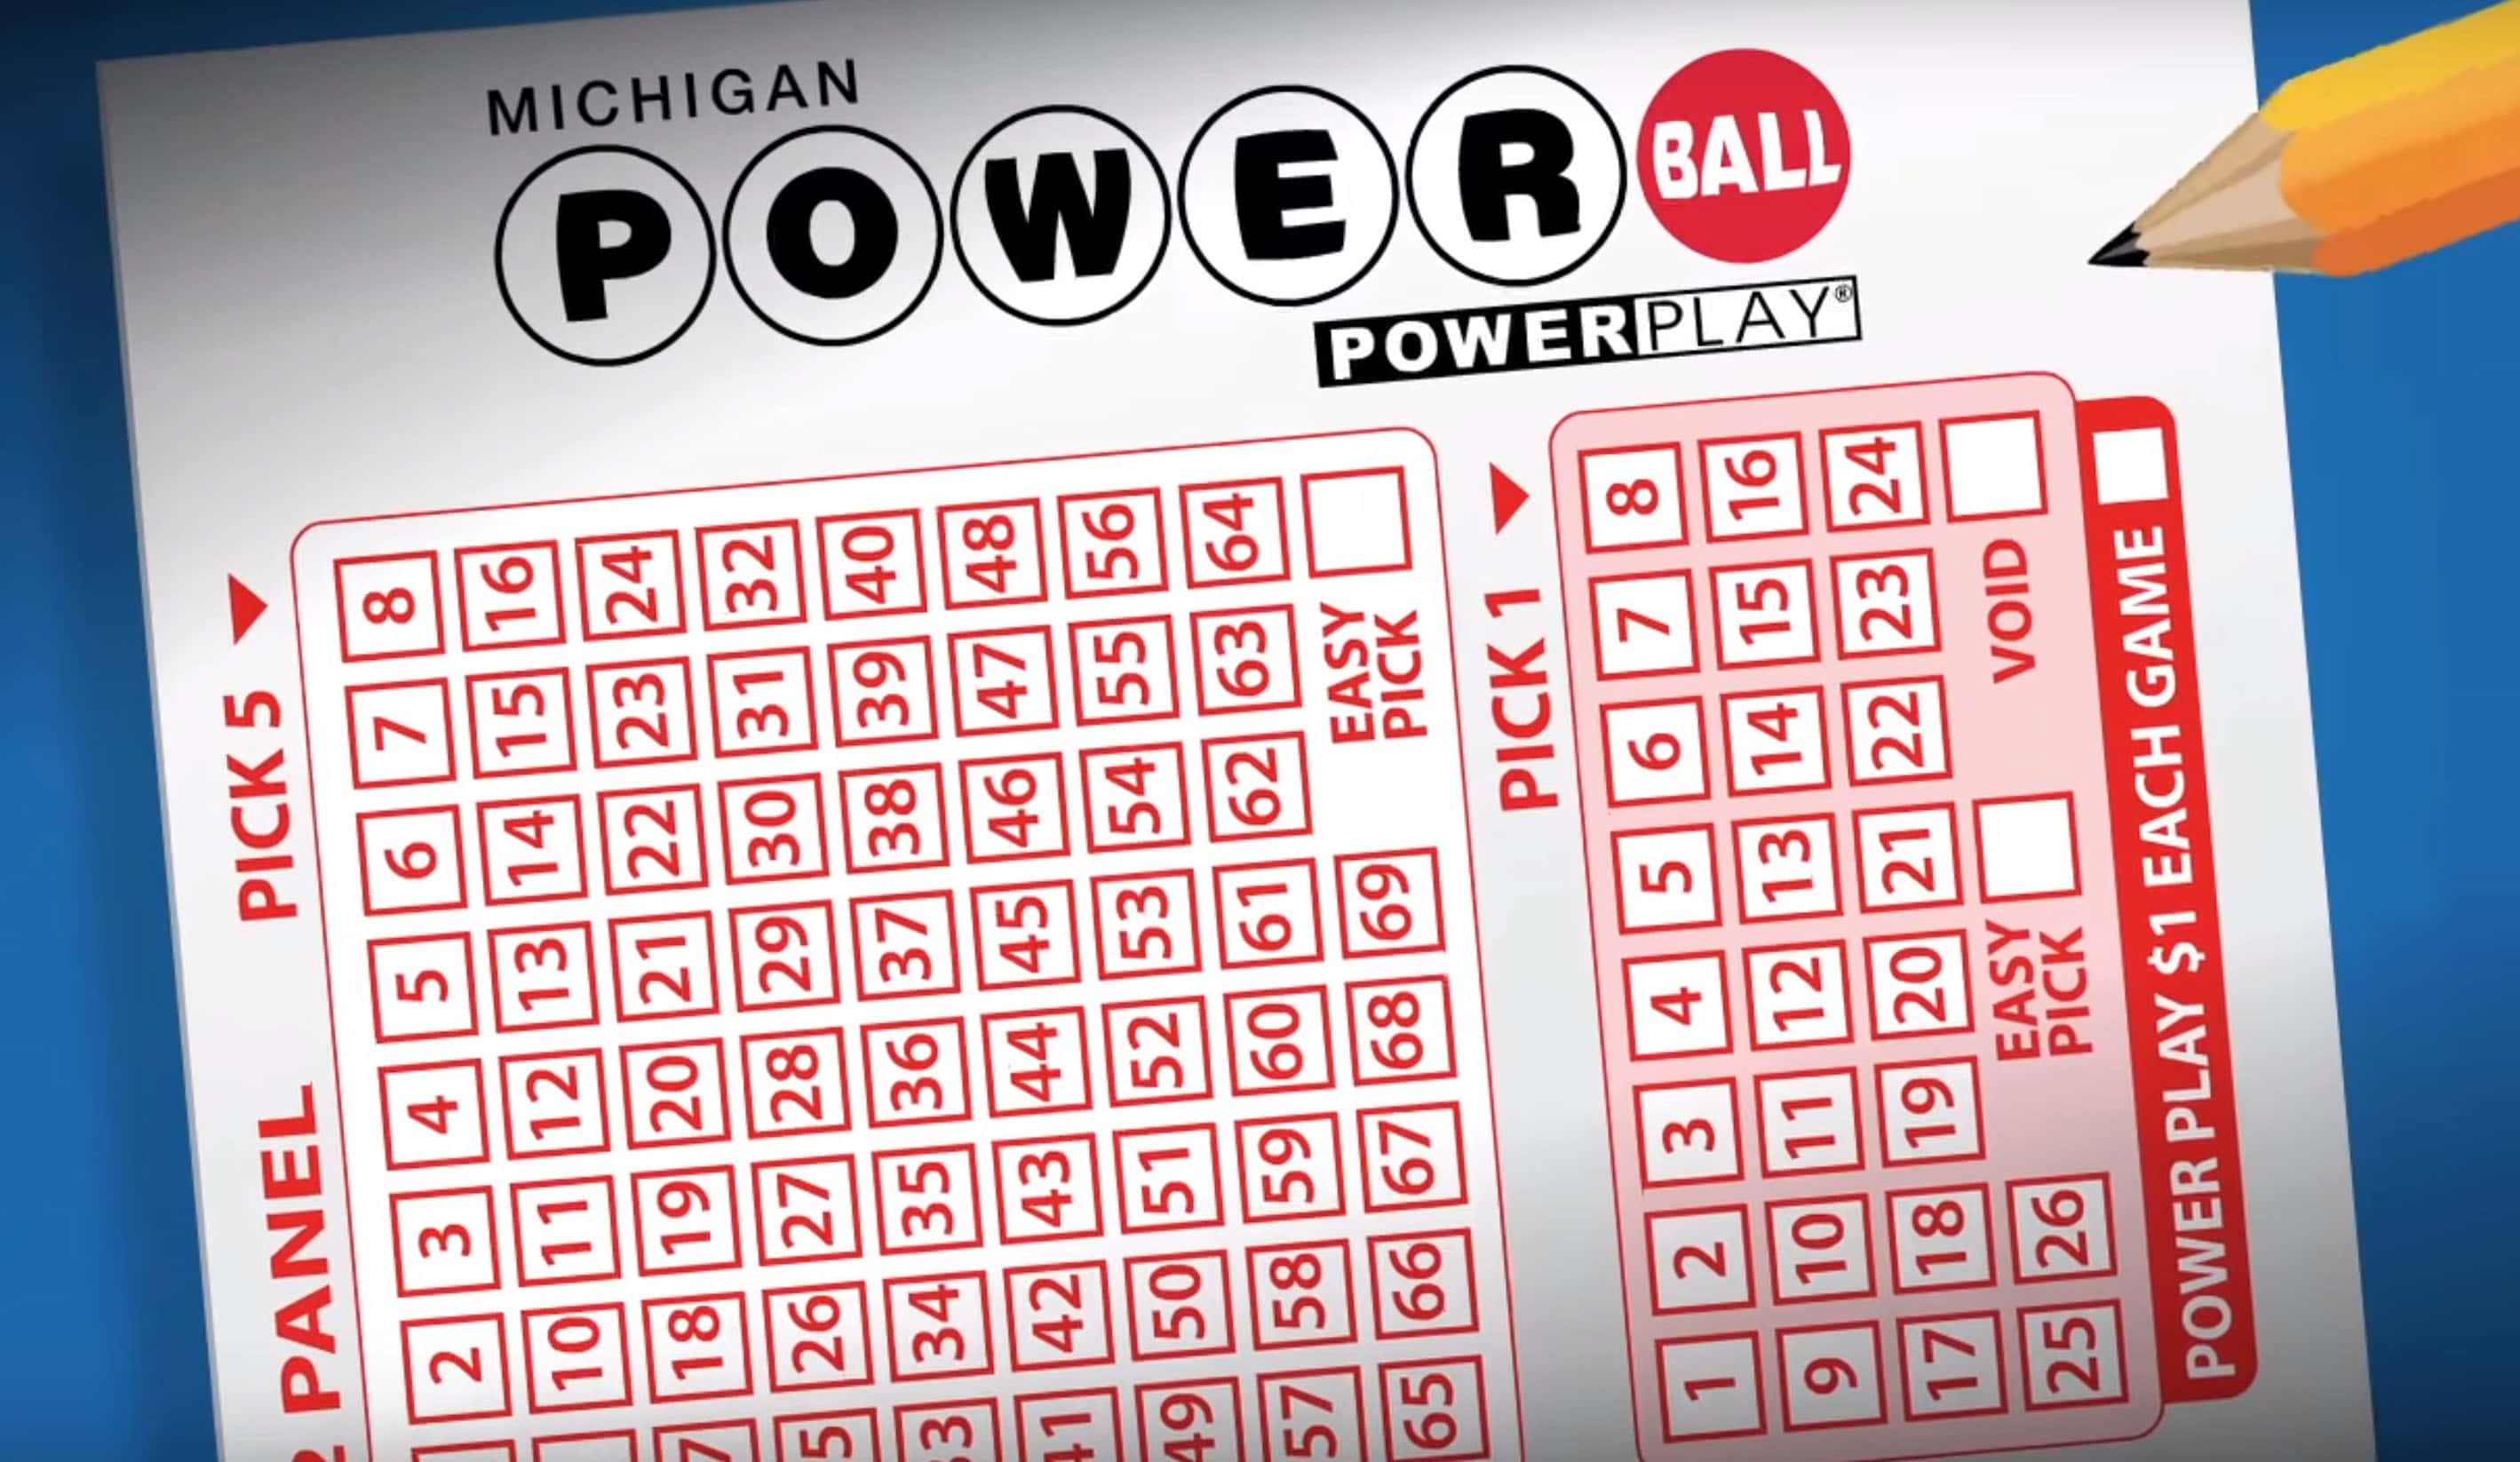 Michigan Buying 100 000 Powerball Tickets An Hour Today Moody On